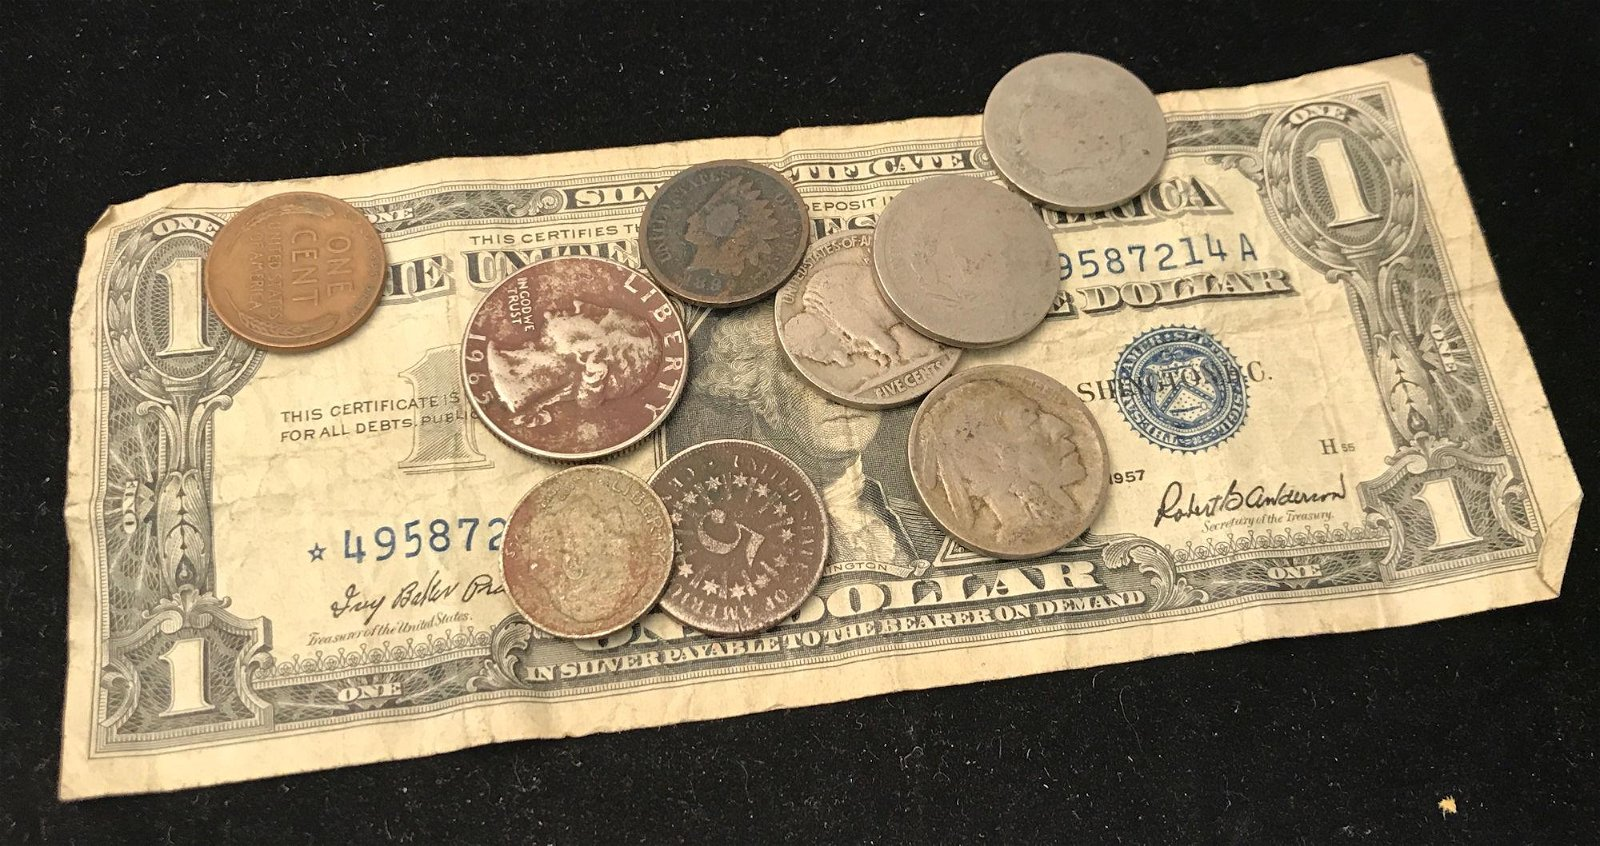 MIXED LOT INCLUDING SERIES 1957 ONE DOLLAR SILVER